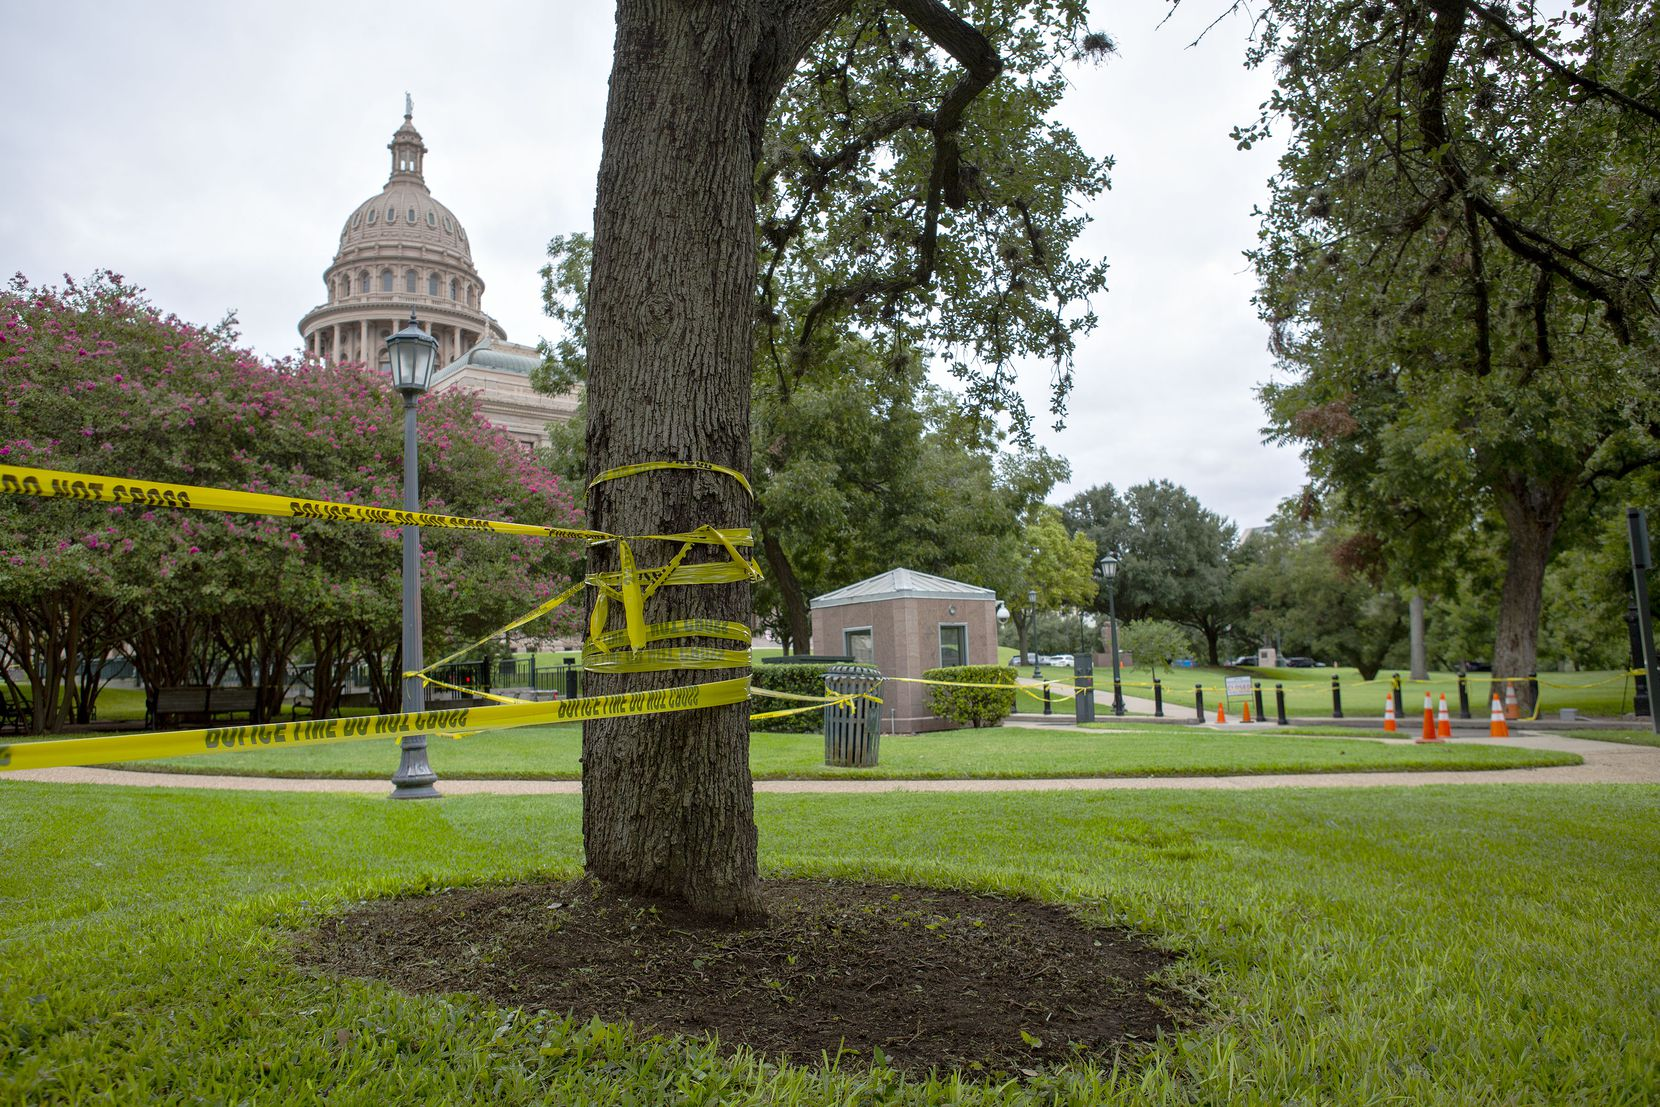 For many weeks, the grounds and buildings at the Texas Capitol Complex have been closed to all but a skeleton staff of workers. Police tape, chained gates and temporary barriers sealed off the grounds Thursday  — 110 days before the start of the Legislature's 87th regular session on Jan. 12, 2021.